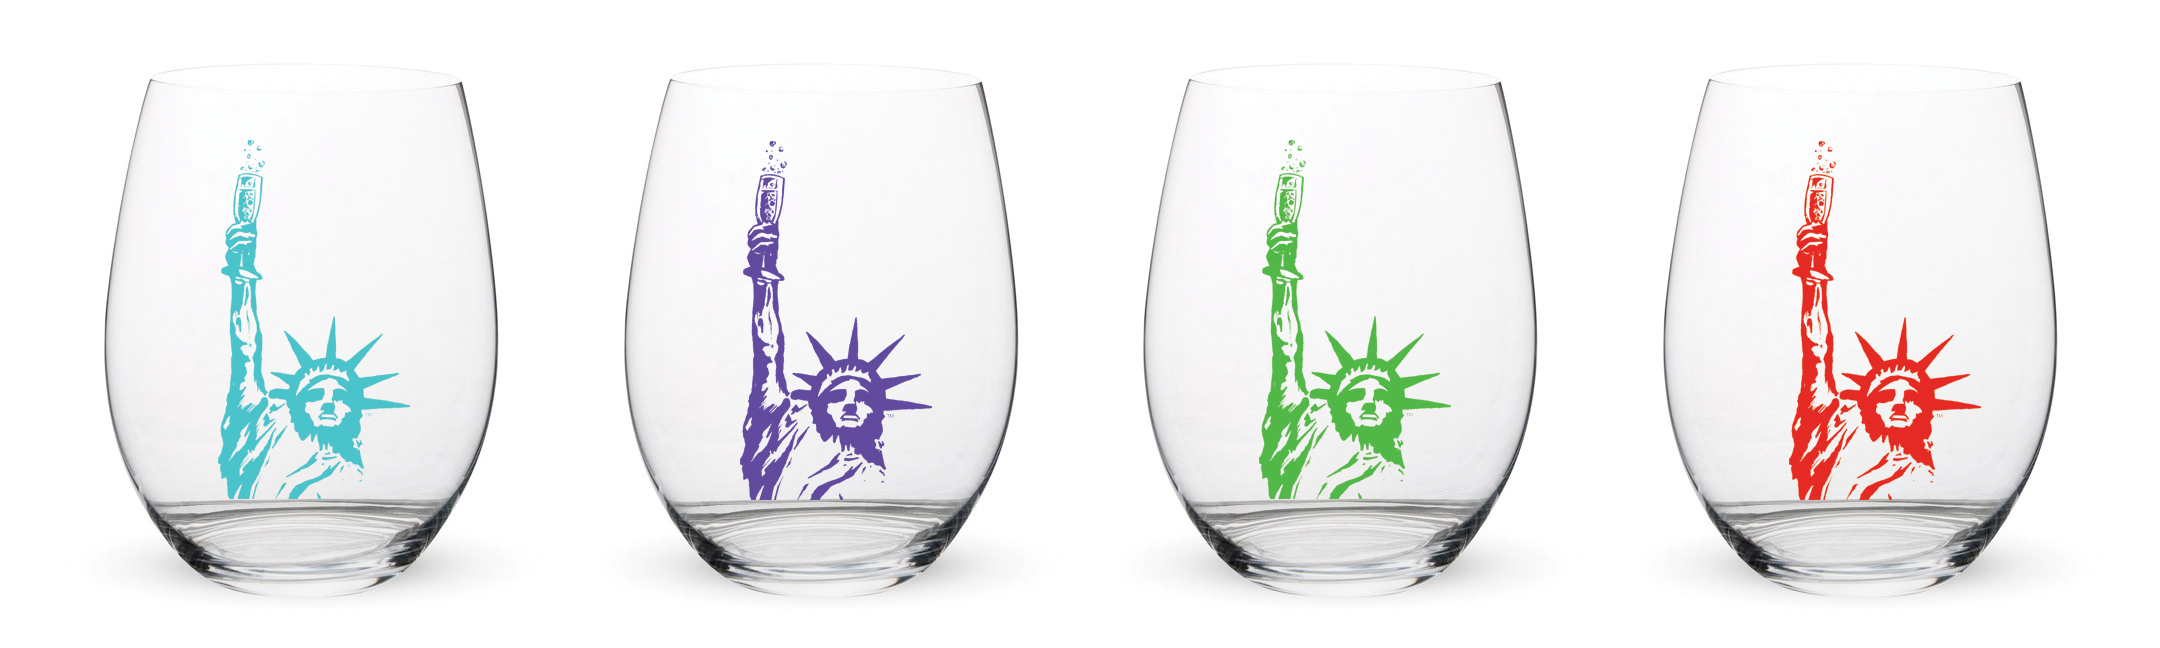 empire-state-of-wine-4-glas